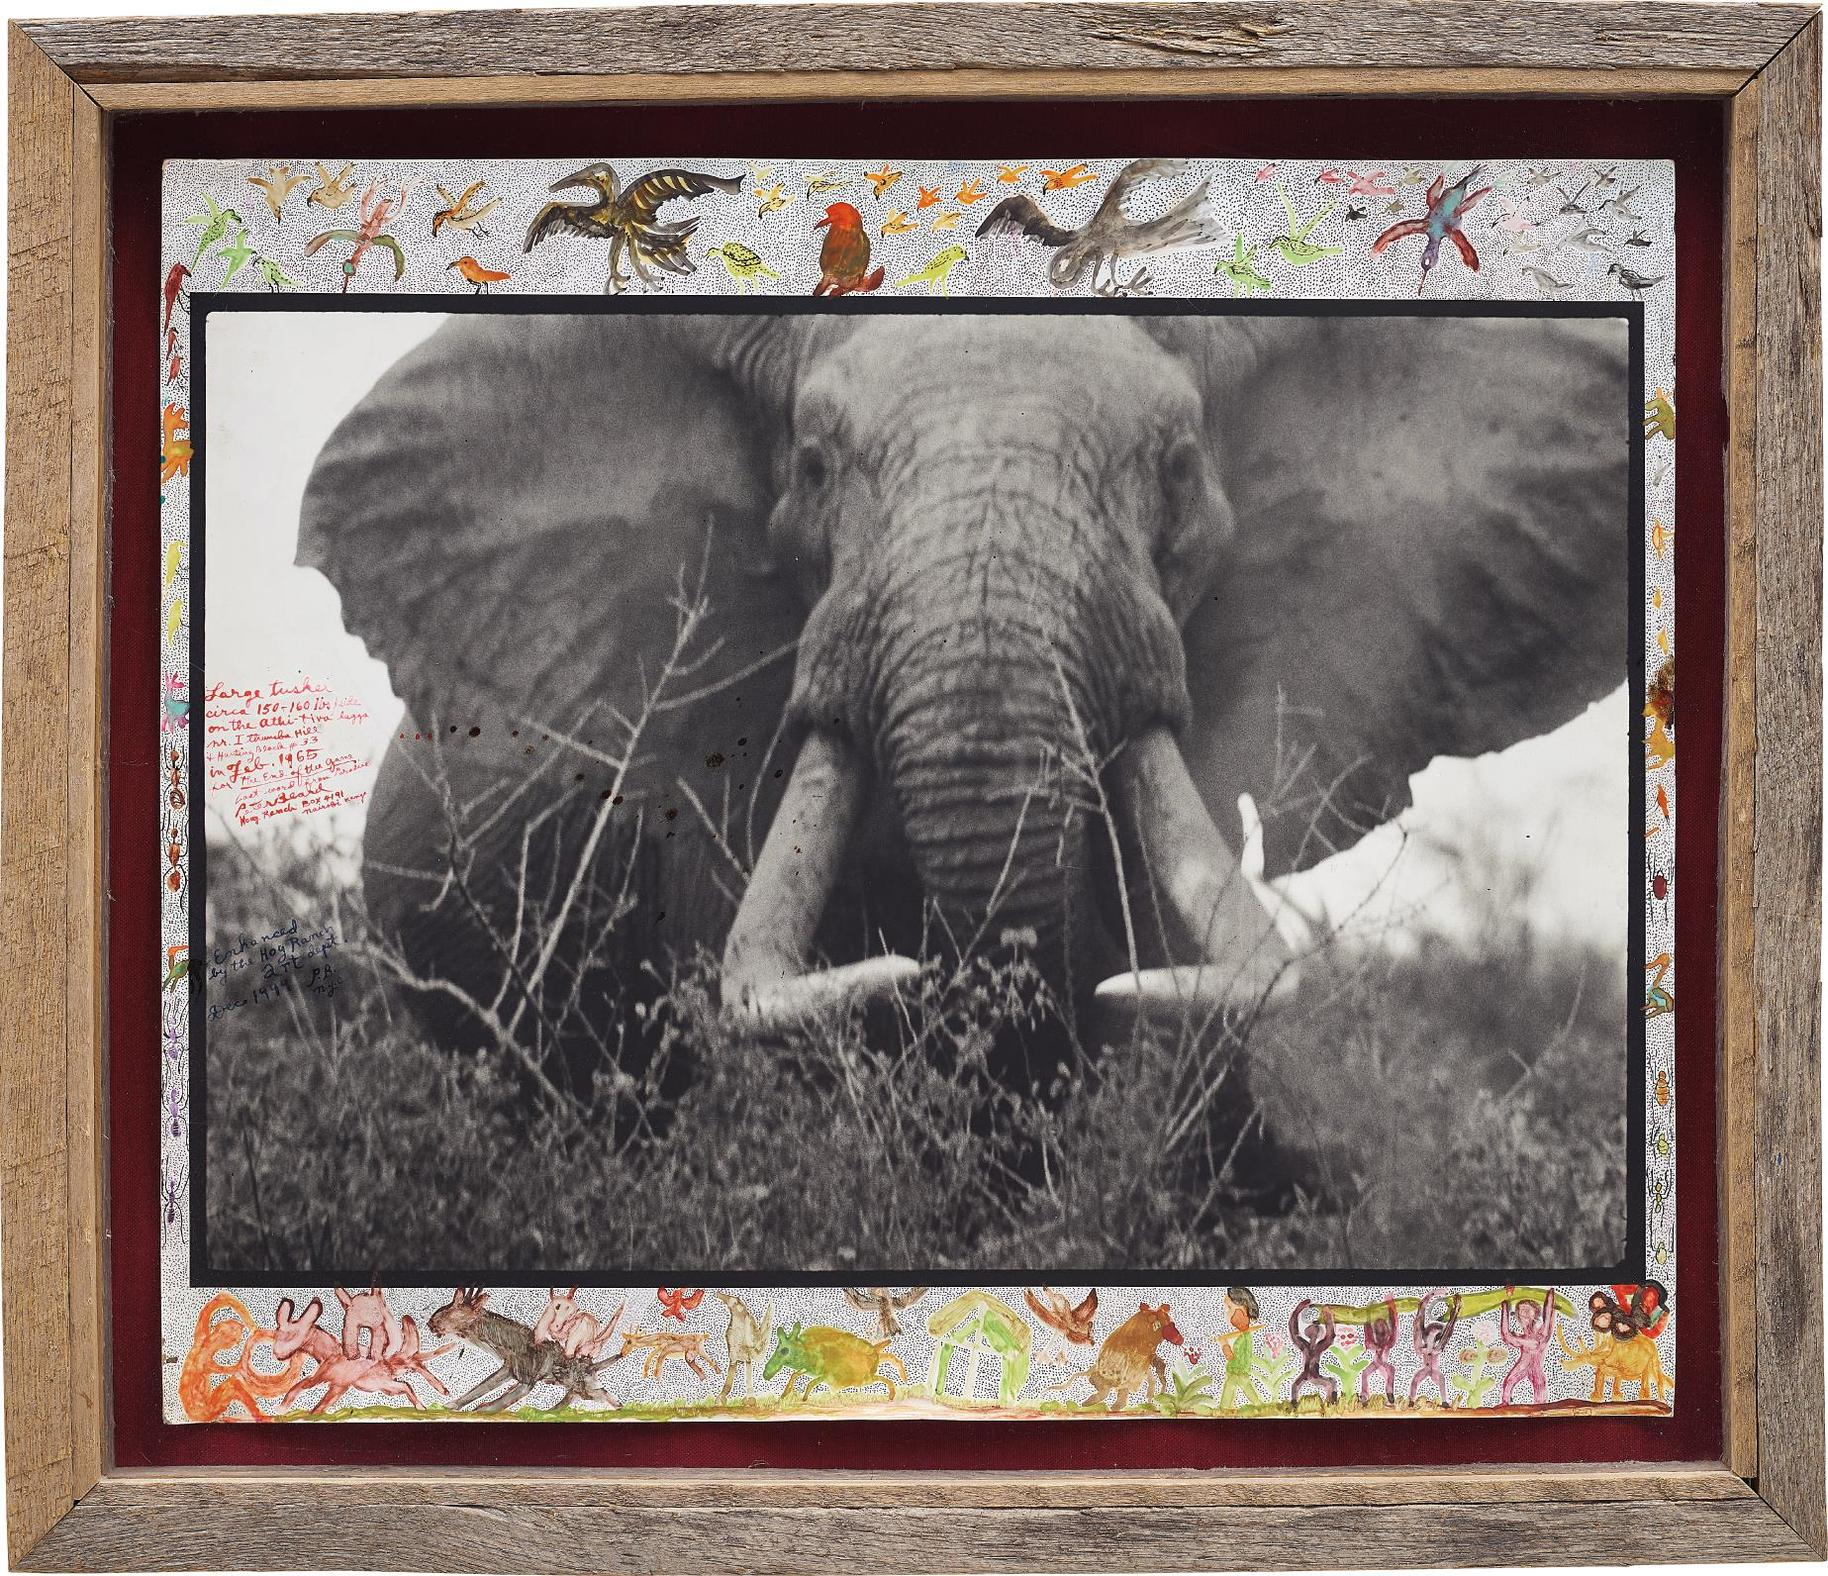 Peter Beard-Large Tusker (C. 150 Lbs Per Side), Tsavo North, Near Hunting Block 33/ Ithumber Hill On The Athi-Tiva Dry River, February-1965